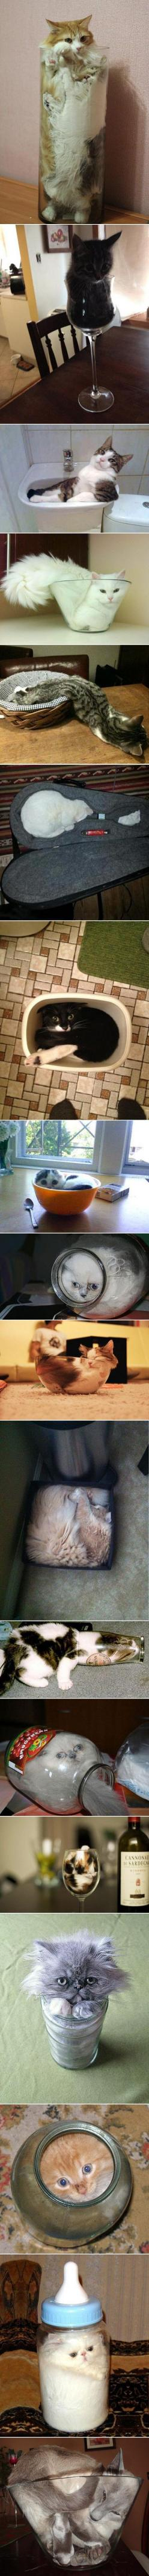 Lol: Kitty Cats, Funny Cats, Container, Proof Cats, Crazy Cat, Liquid Cats, Cat Lady, Animal